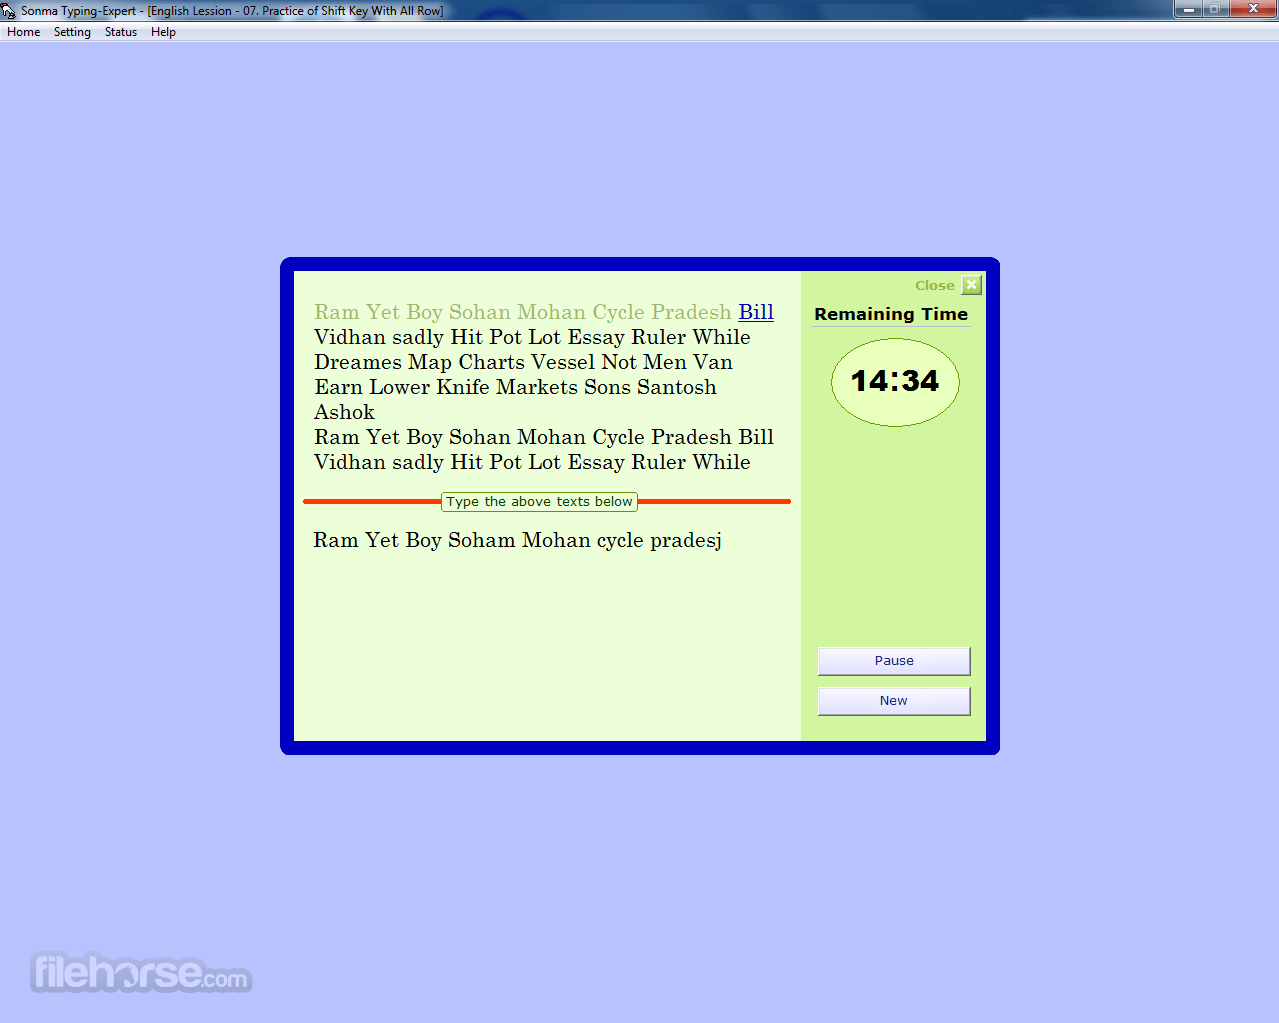 Sonma Typing Expert 2.01.0000 Screenshot 3